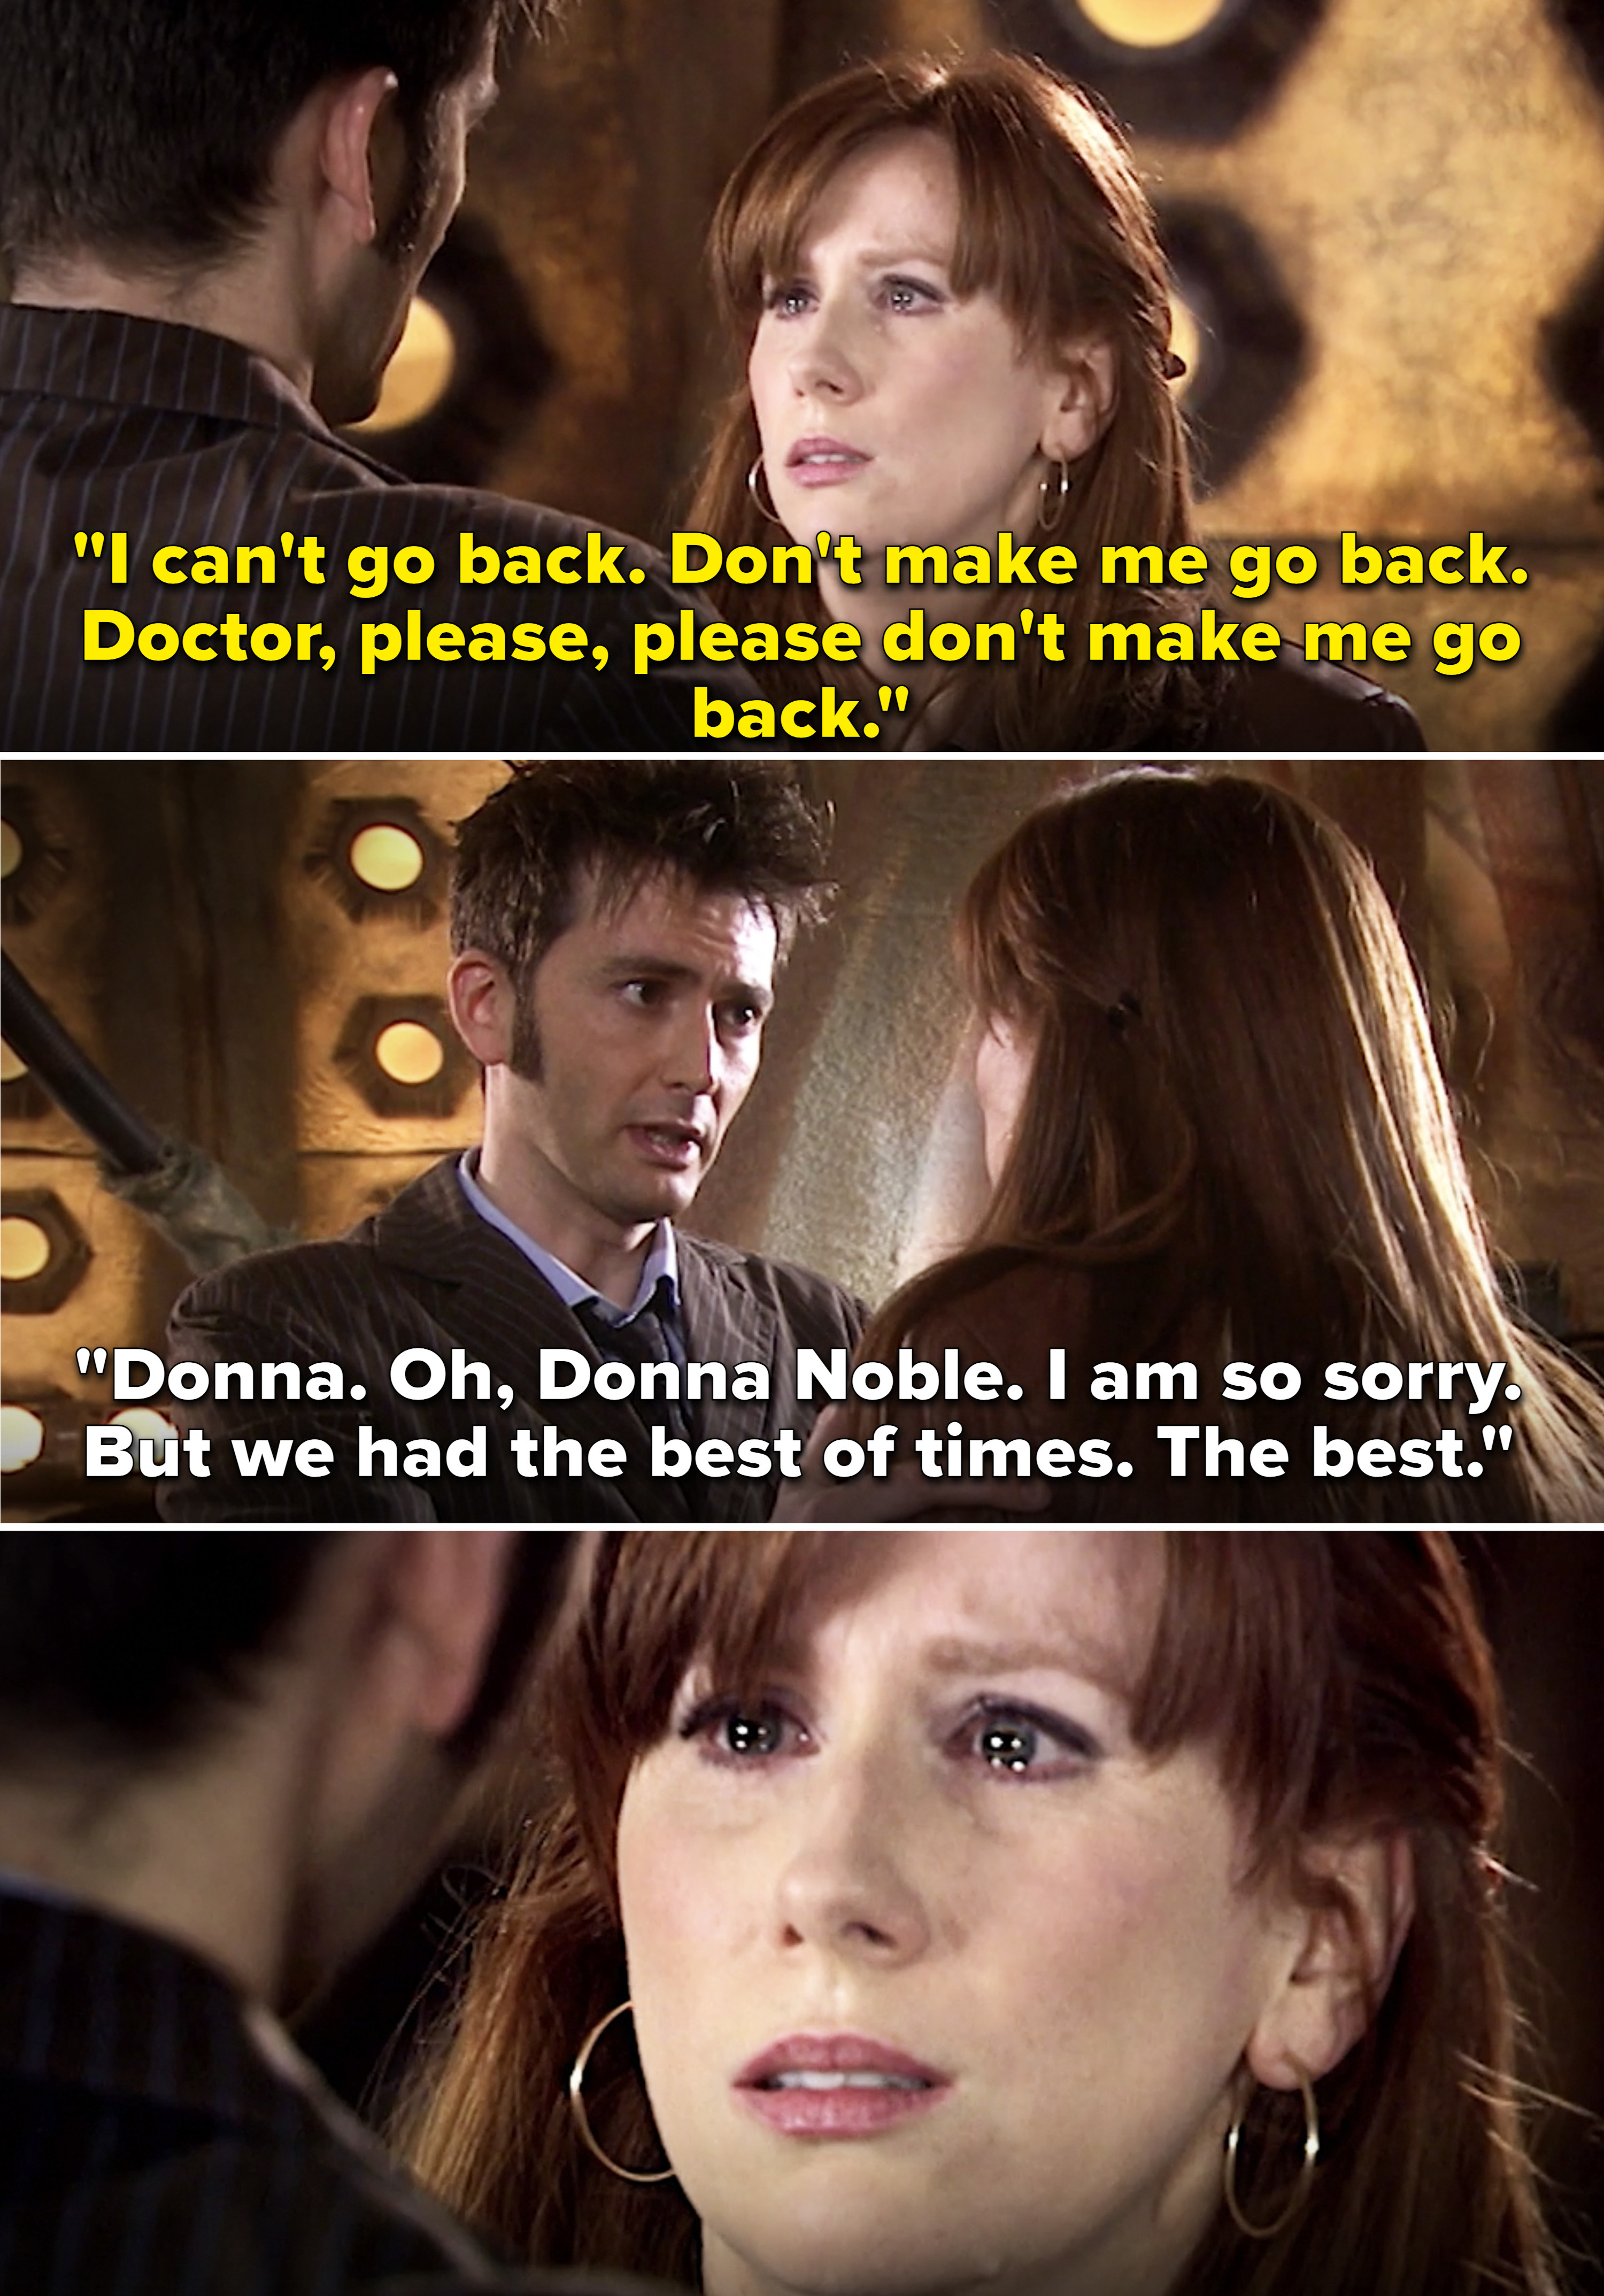 """Donna pleading with the Doctor not to go back and Doctor saying, """"I am so sorry. But we had the best of times"""""""